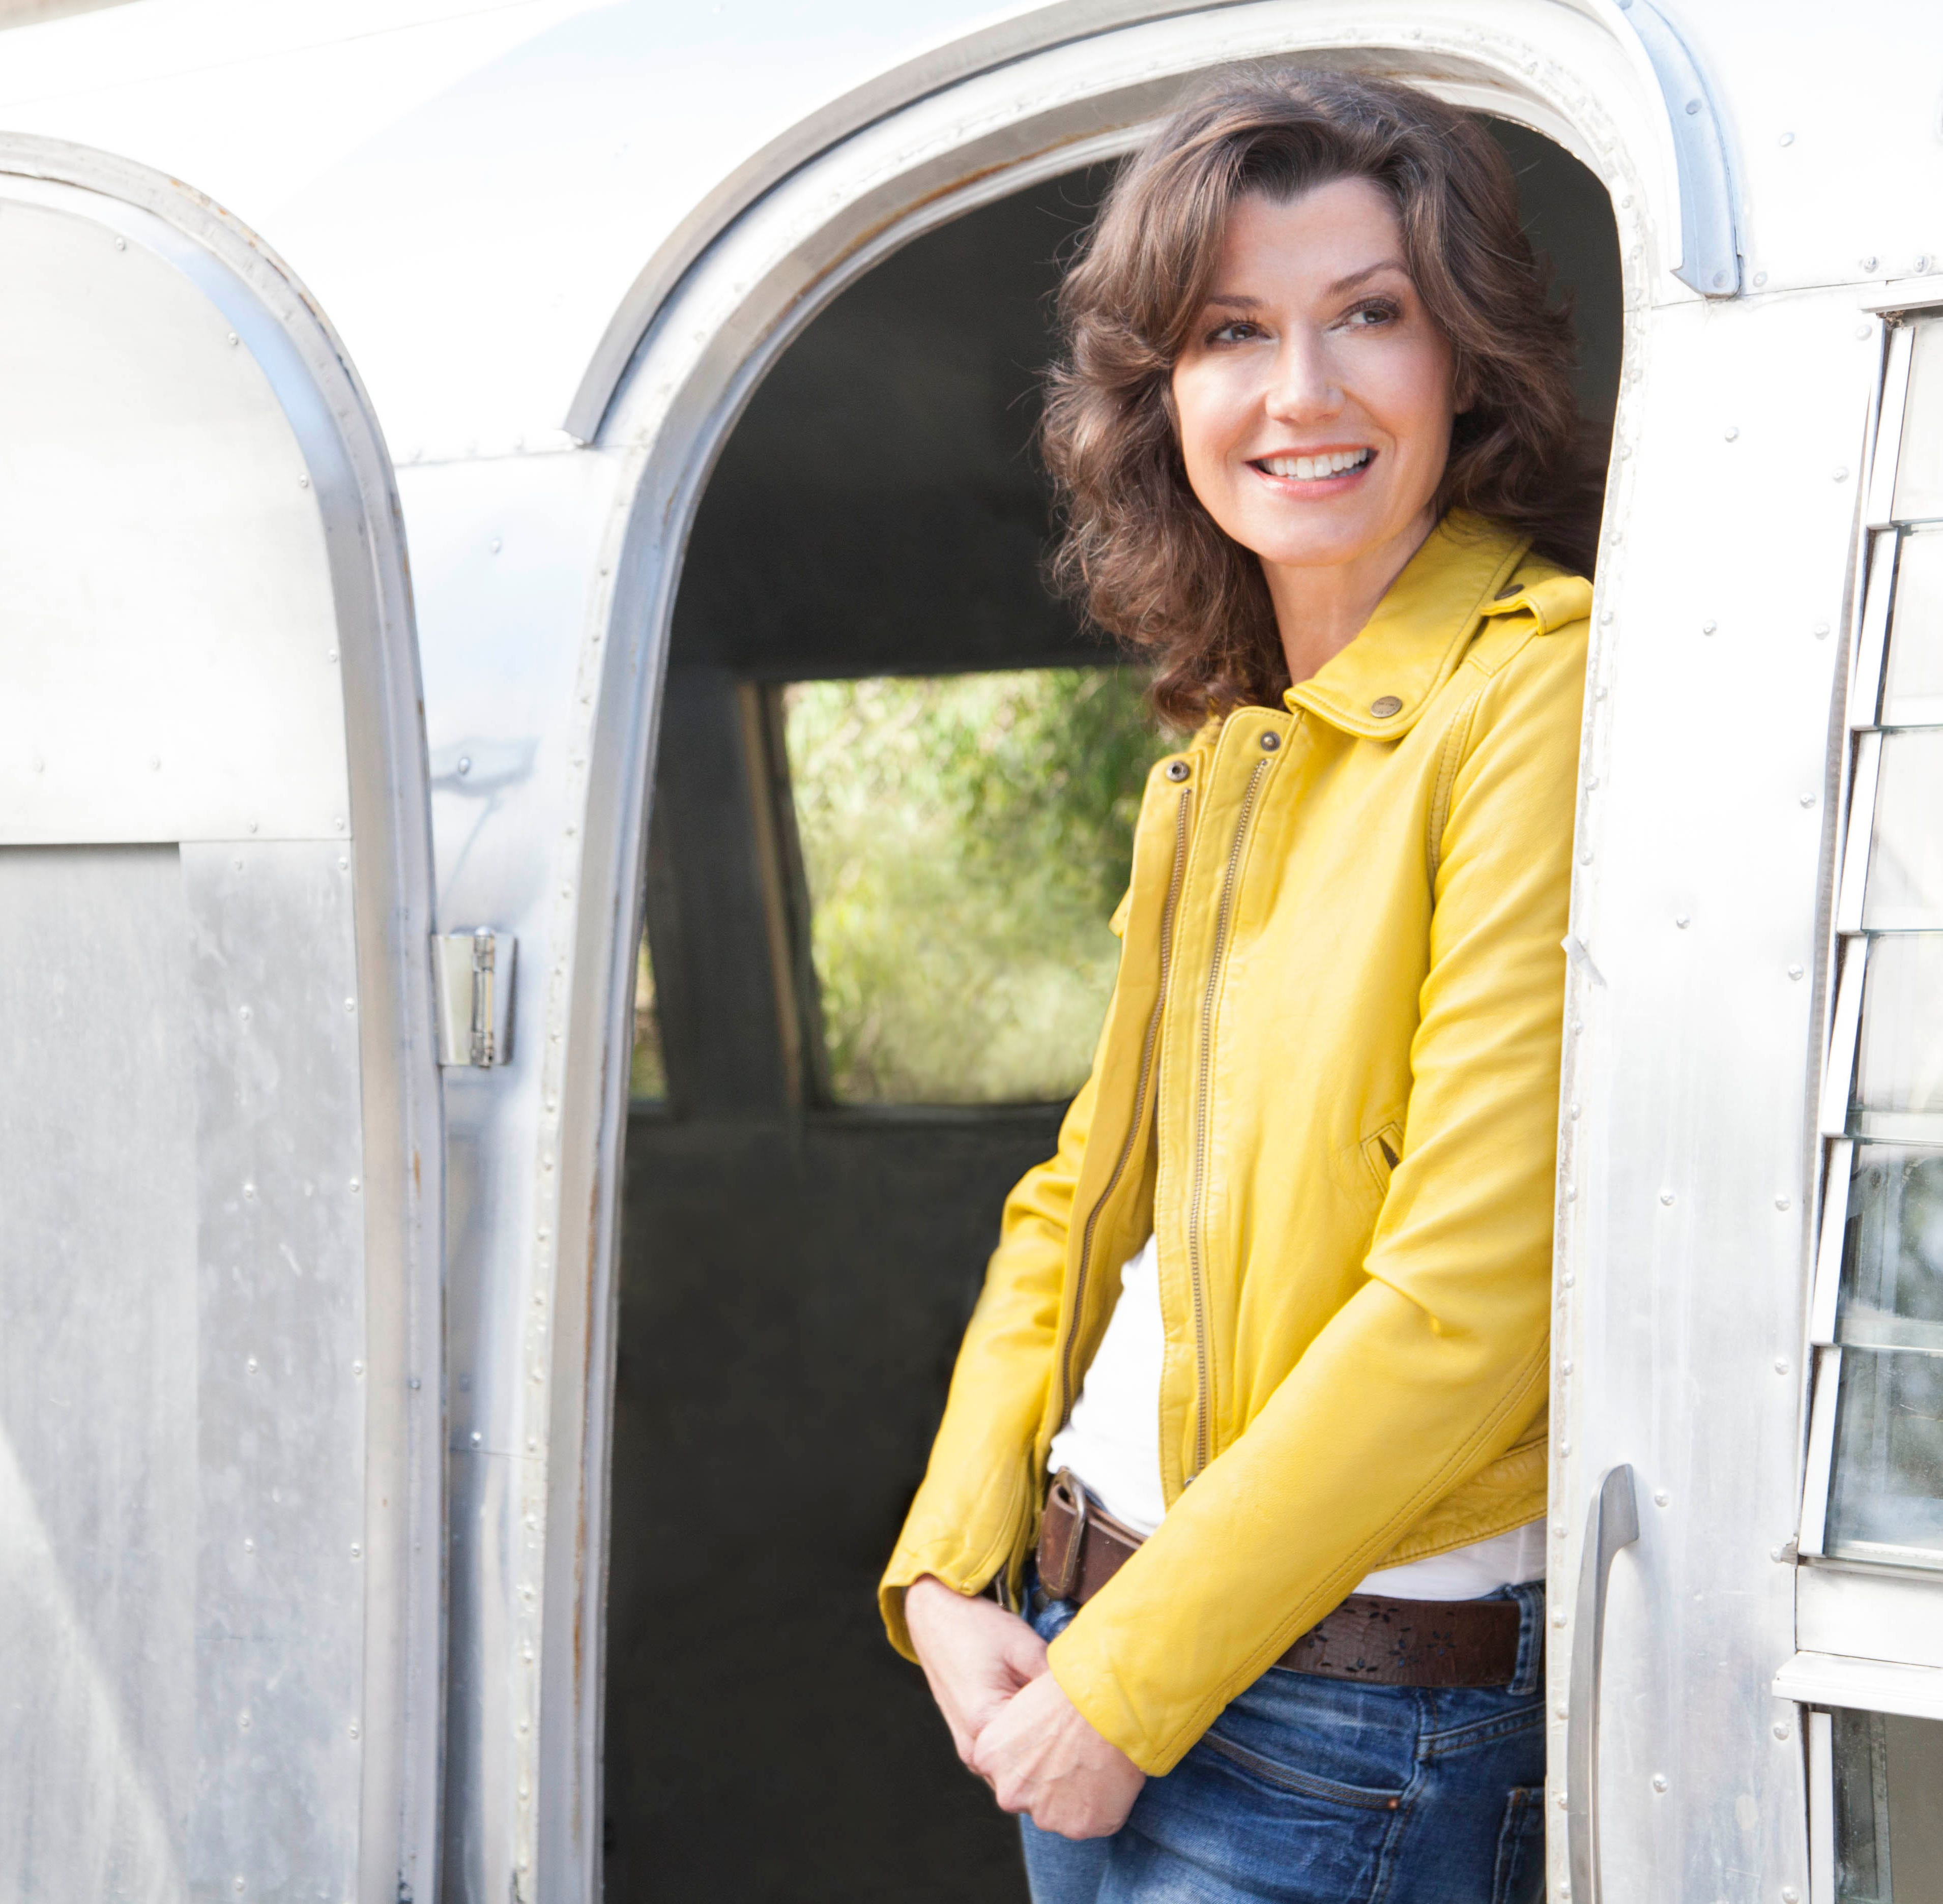 Grammy Award winner, Amy Grant, hits the road again